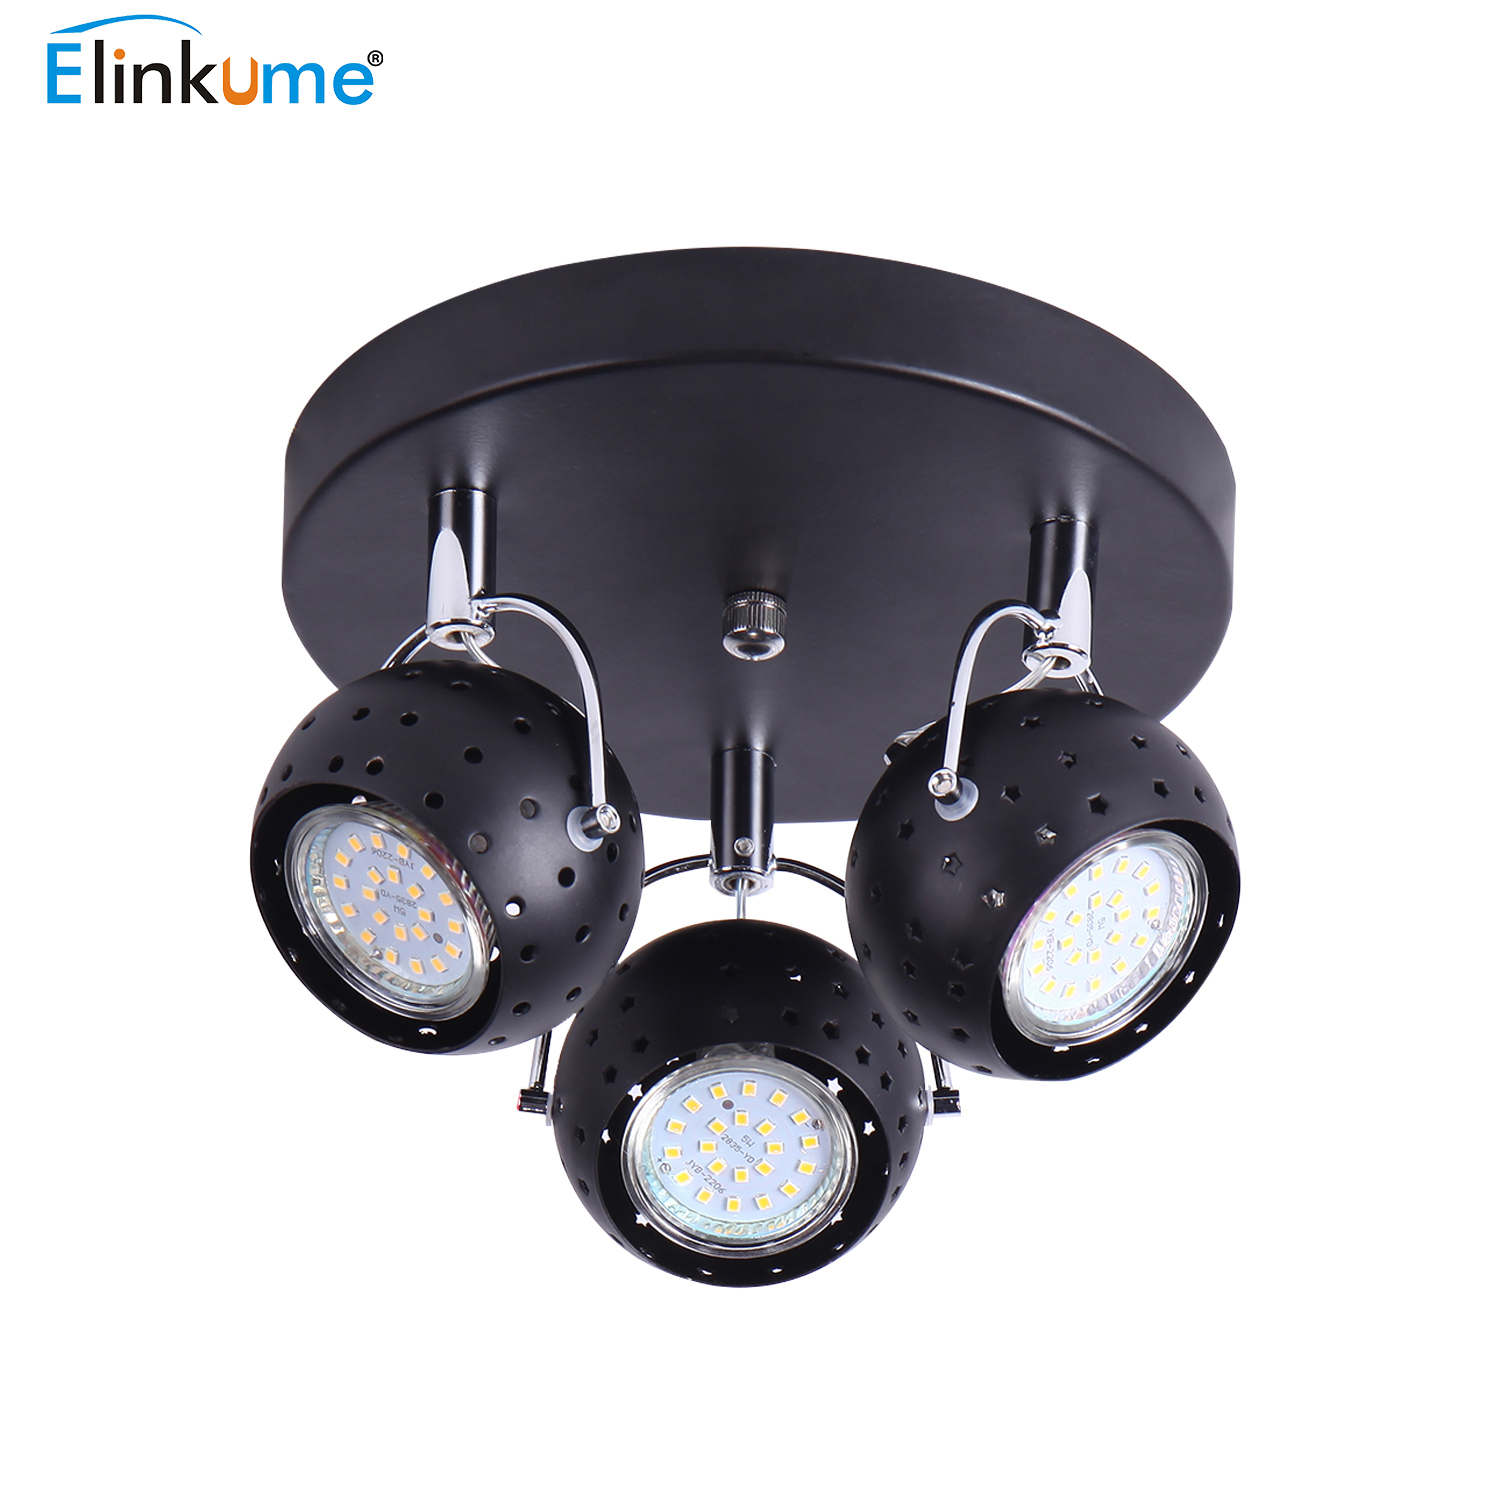 15W Modern Simple Style Ceiling Light Dimmable Home Bedroom Living Room Light15W Modern Simple Style Ceiling Light Dimmable Home Bedroom Living Room Light